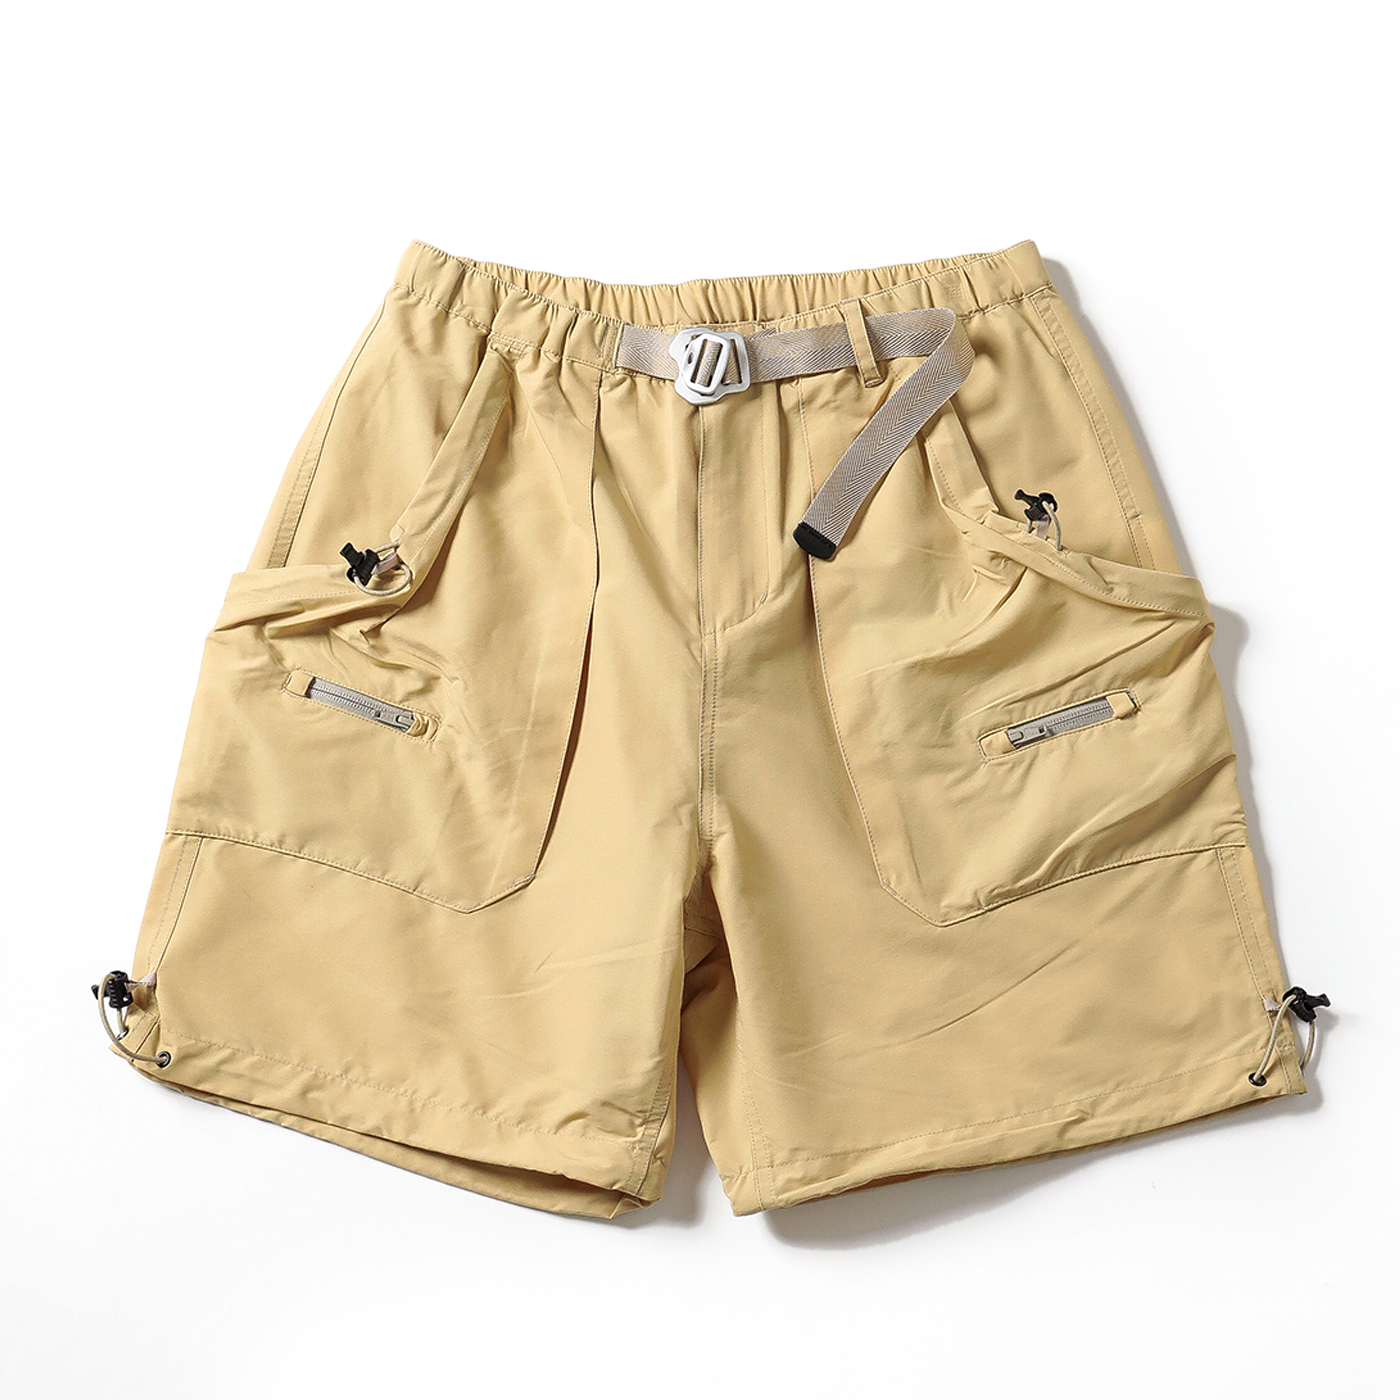 product: Garfield Shorts / color: BEIGE 1